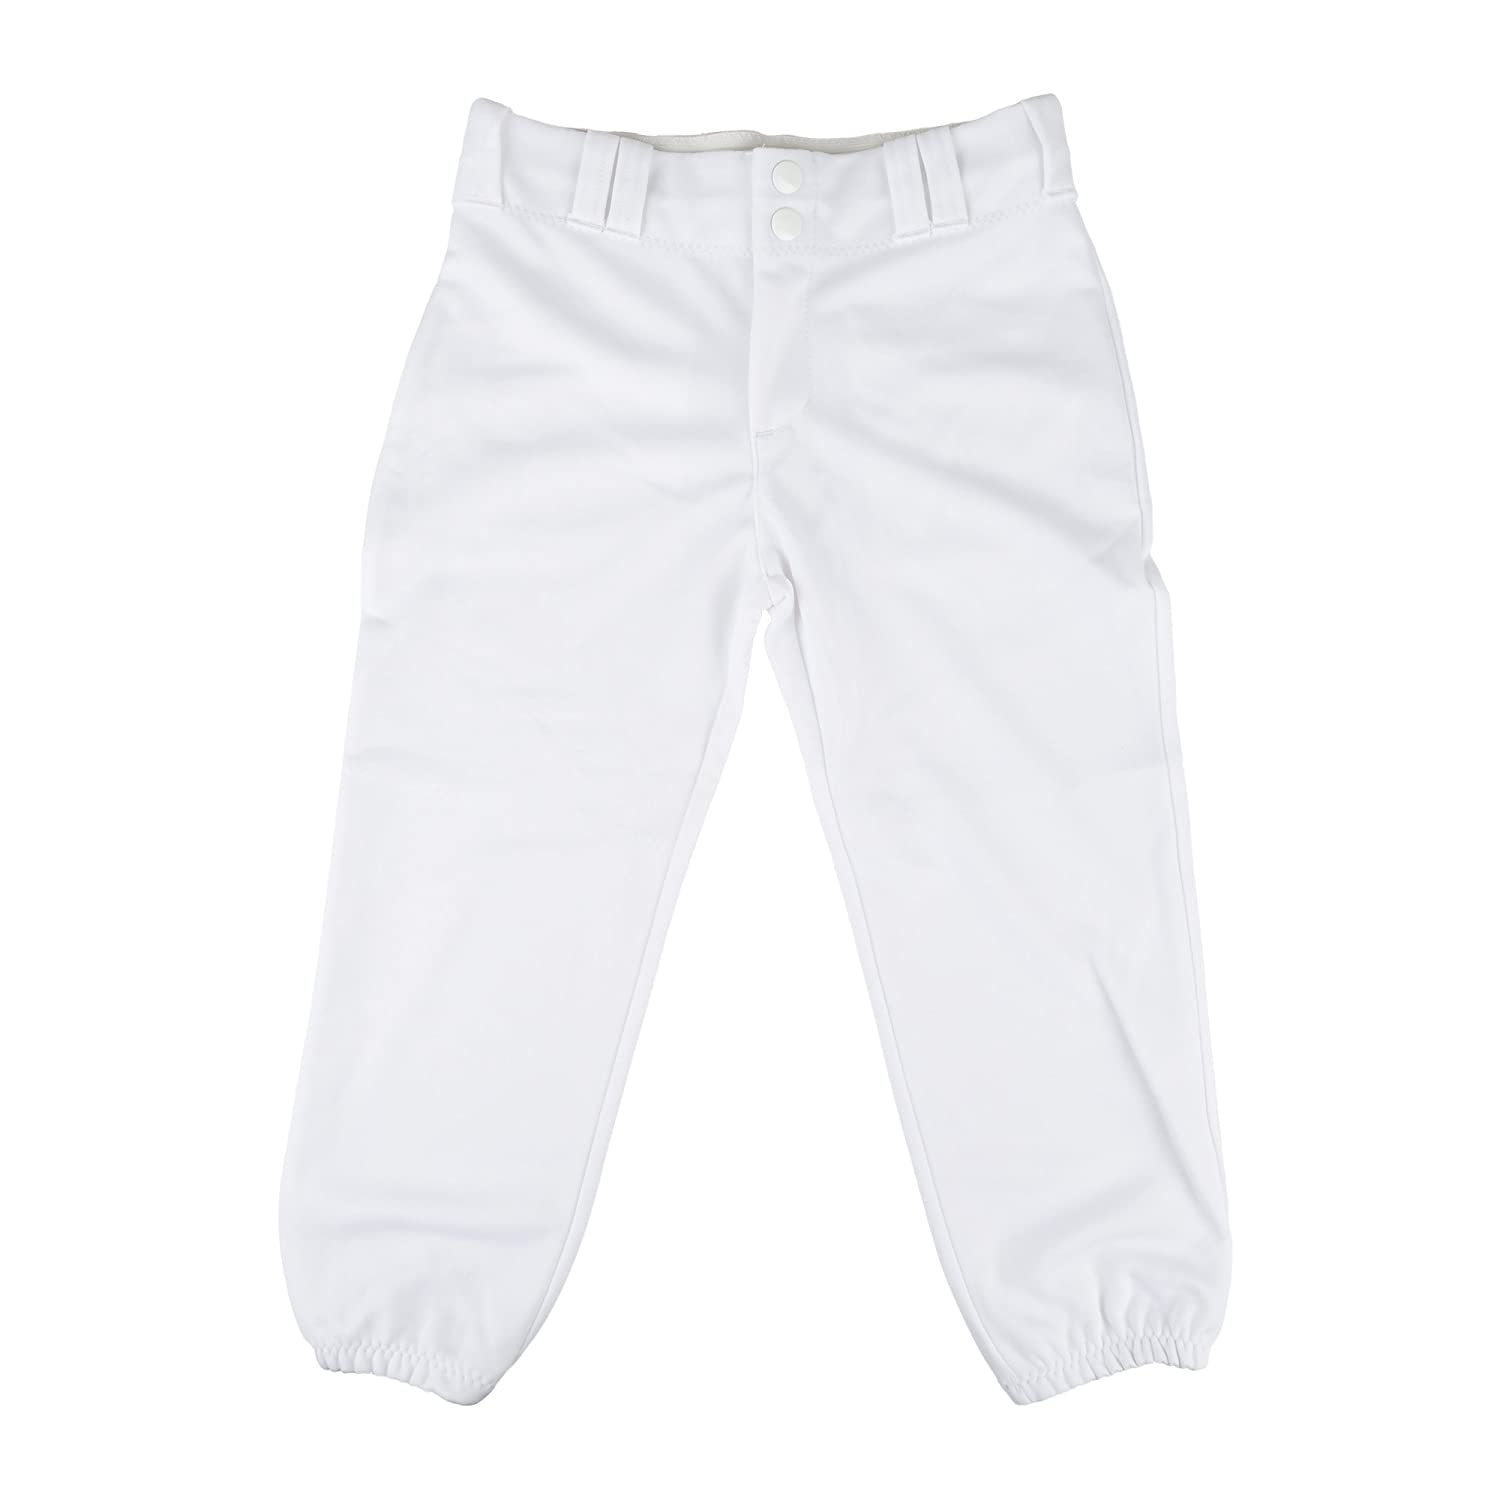 Alleson Athletic Women 's Softball Pants withベルトループ B00ID65SOQ M|ホワイト ホワイト M